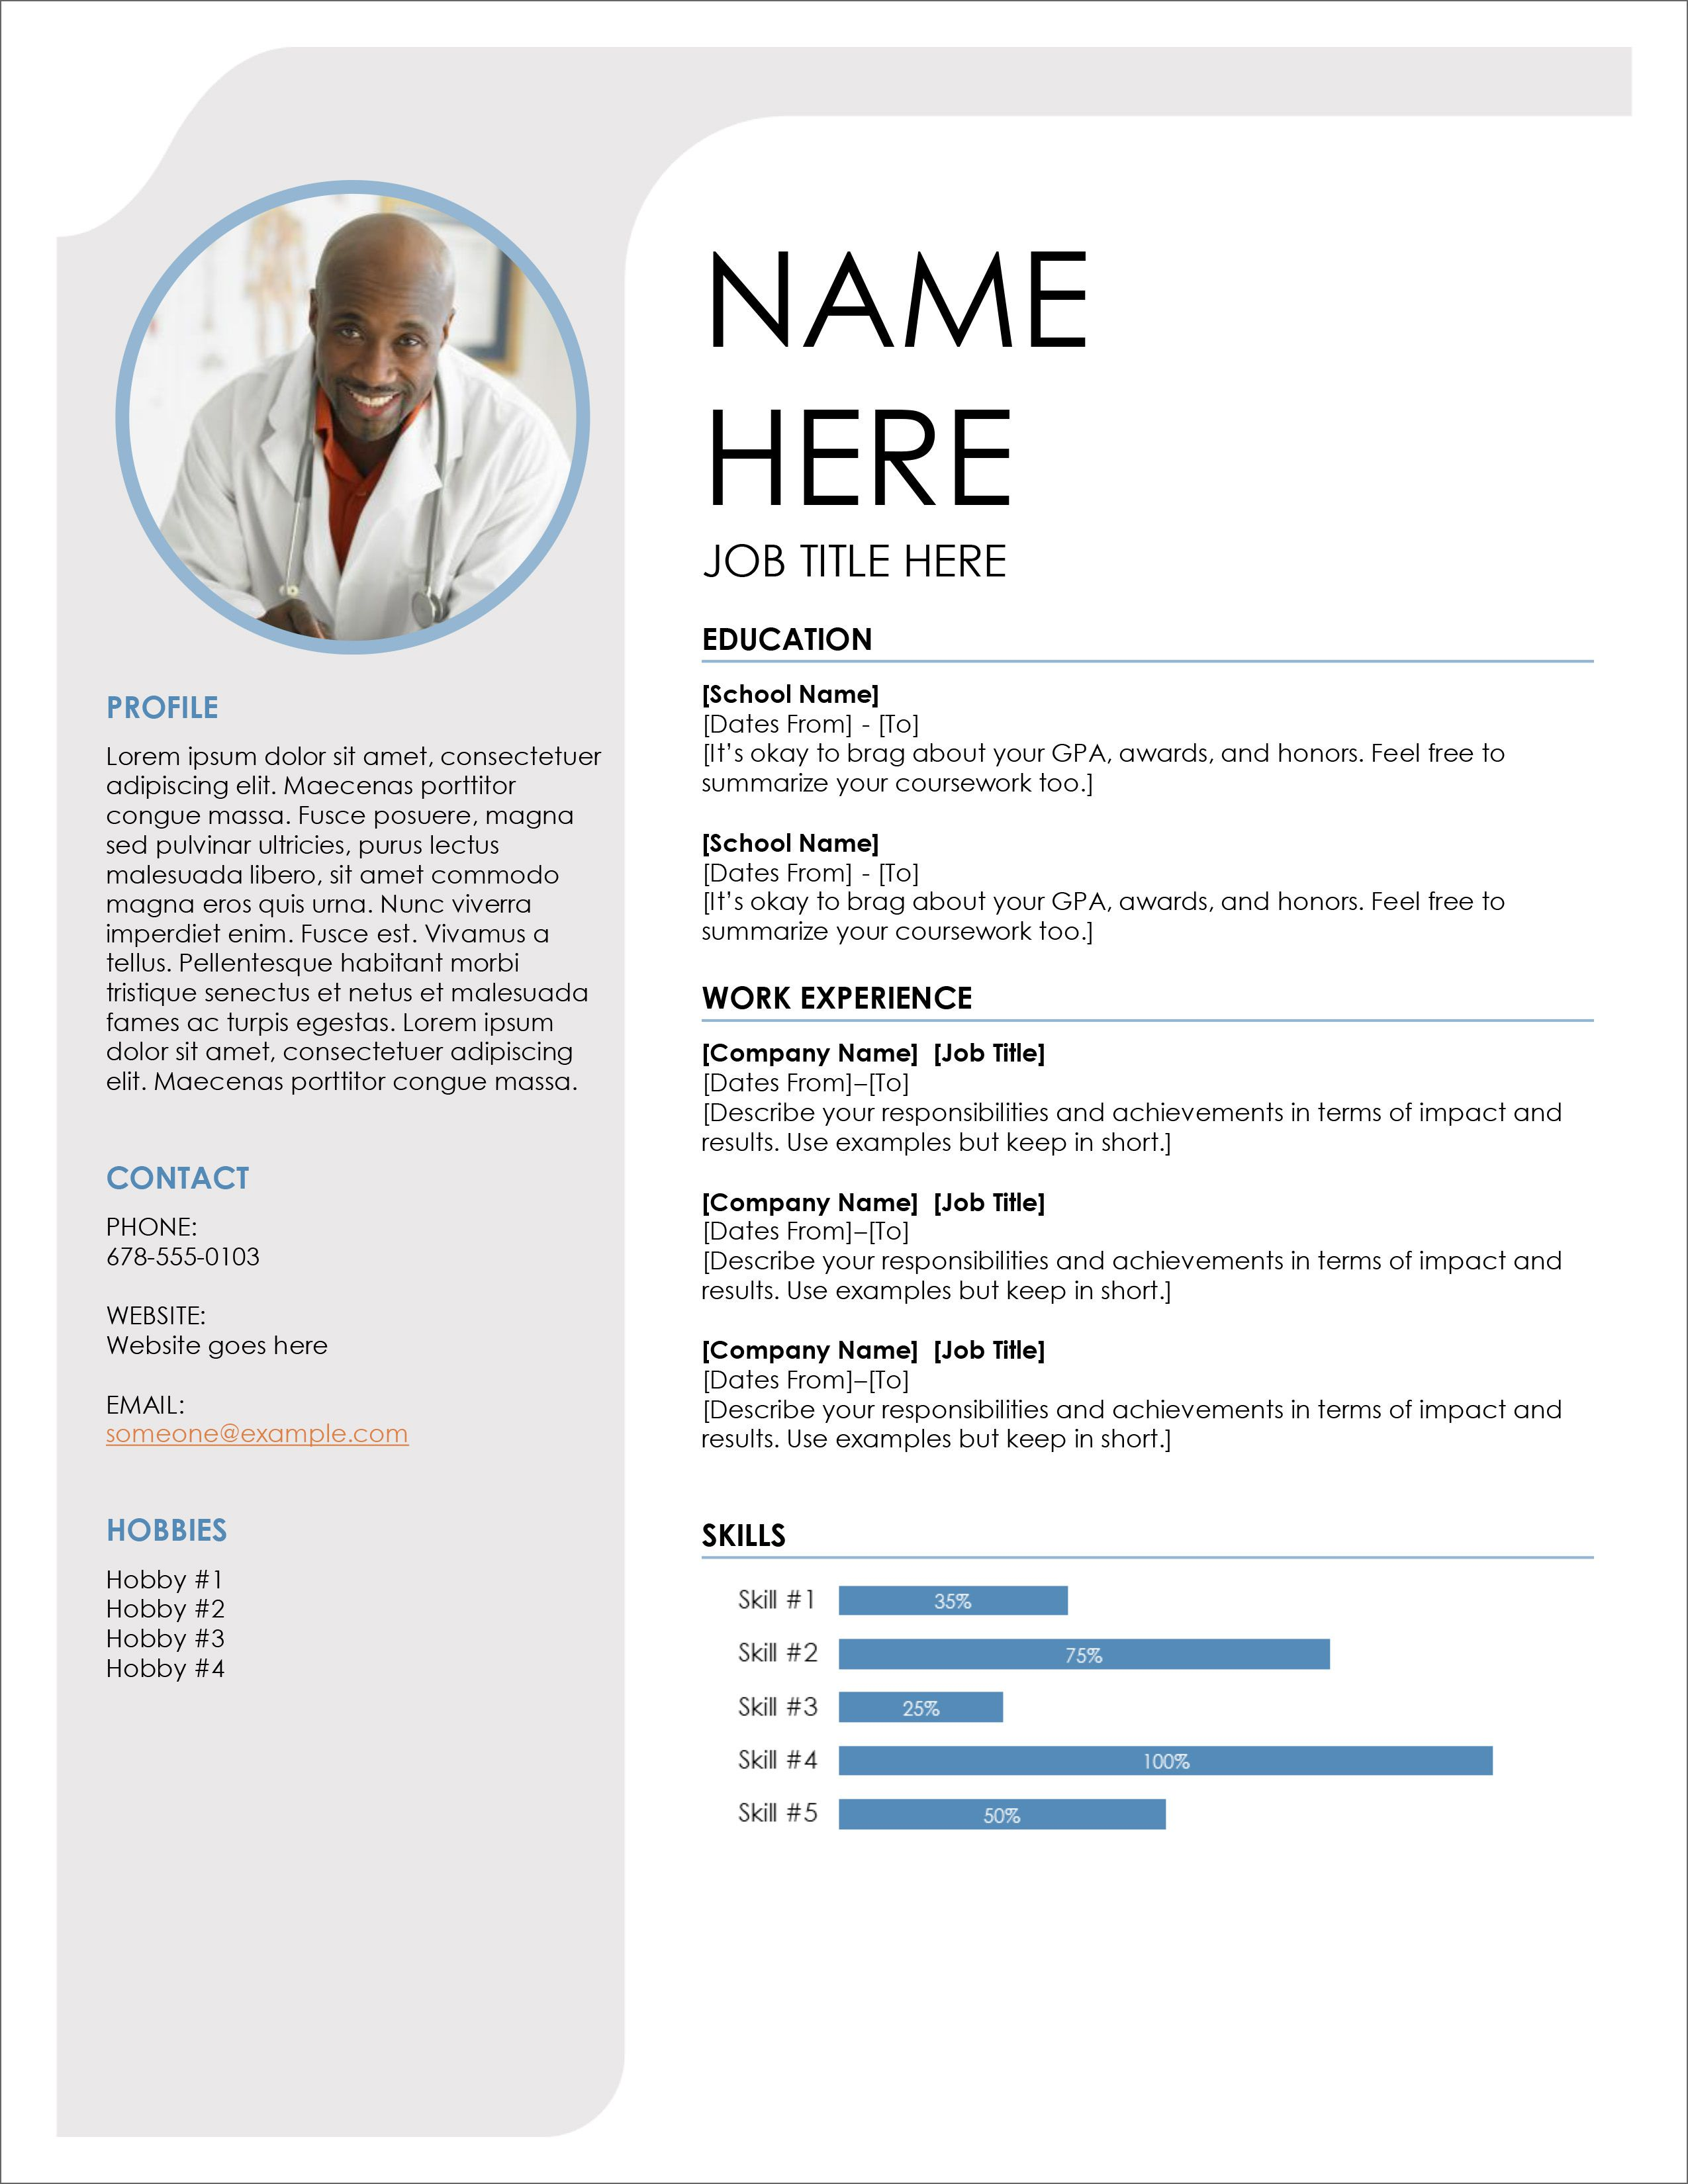 007 Awful Resume Template Download Free Photo  Word 2018 Page PdfFull